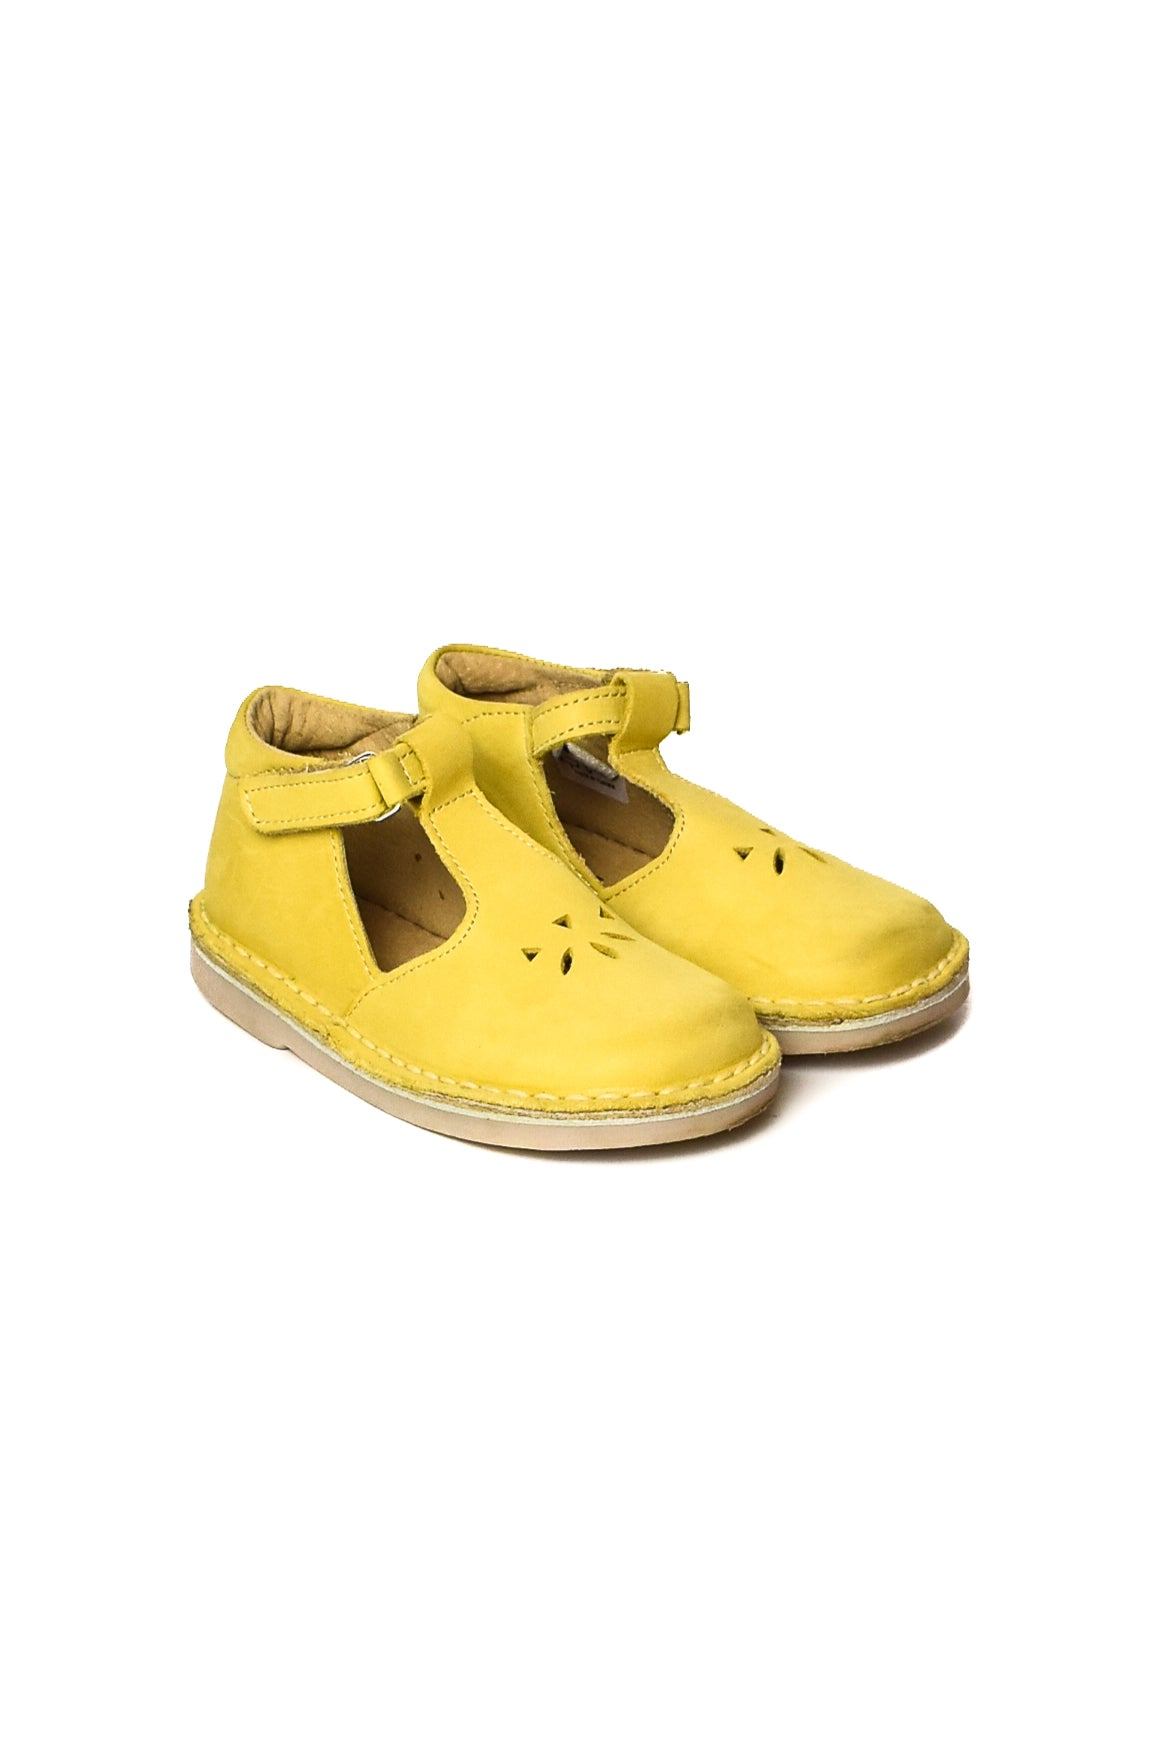 10008419 Cyrillus Kids ~ Shoes 3T (EU 25) at Retykle